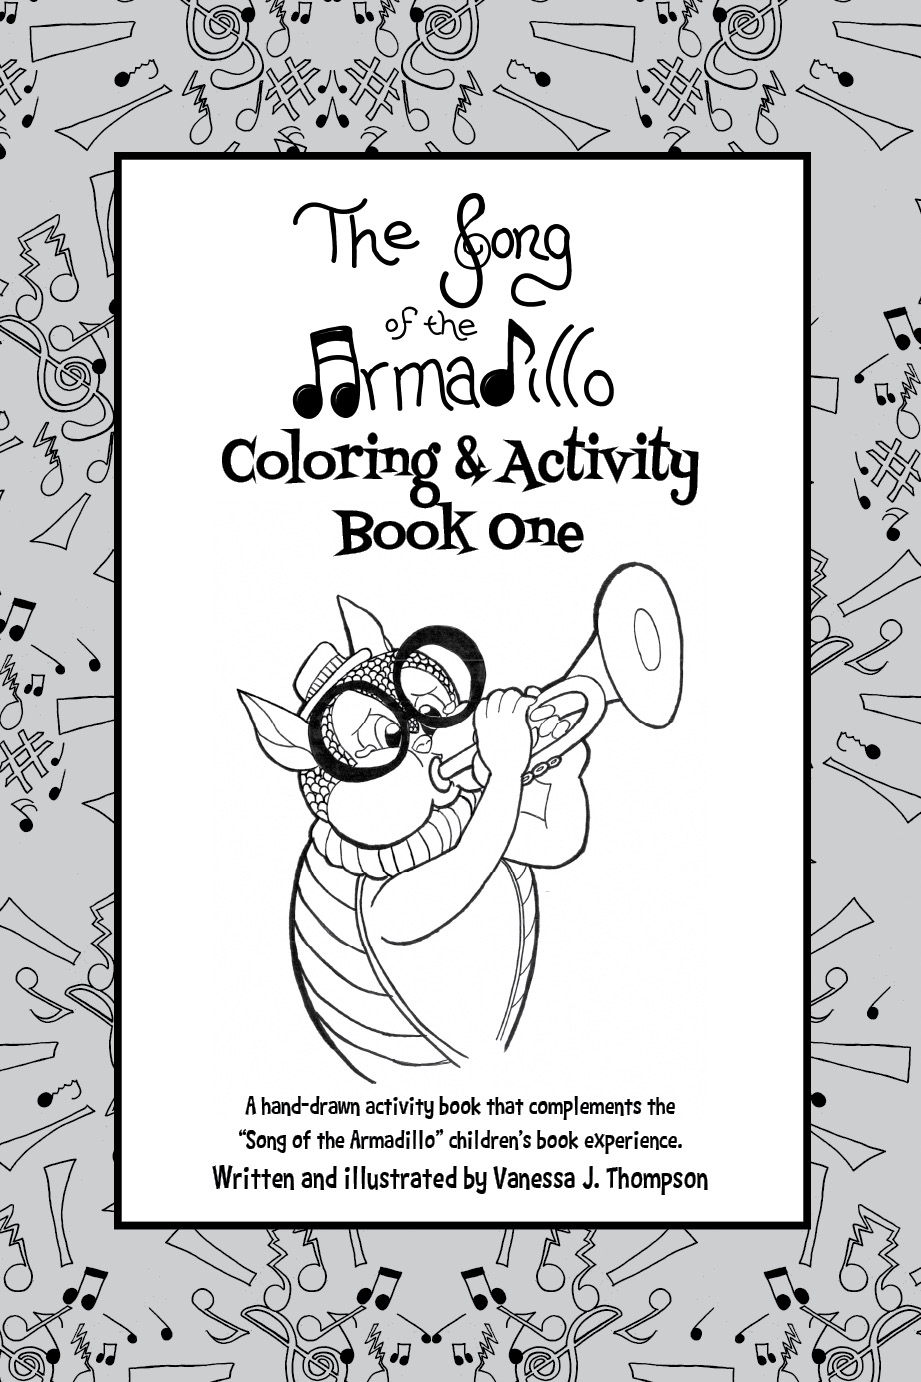 Book One Title Page